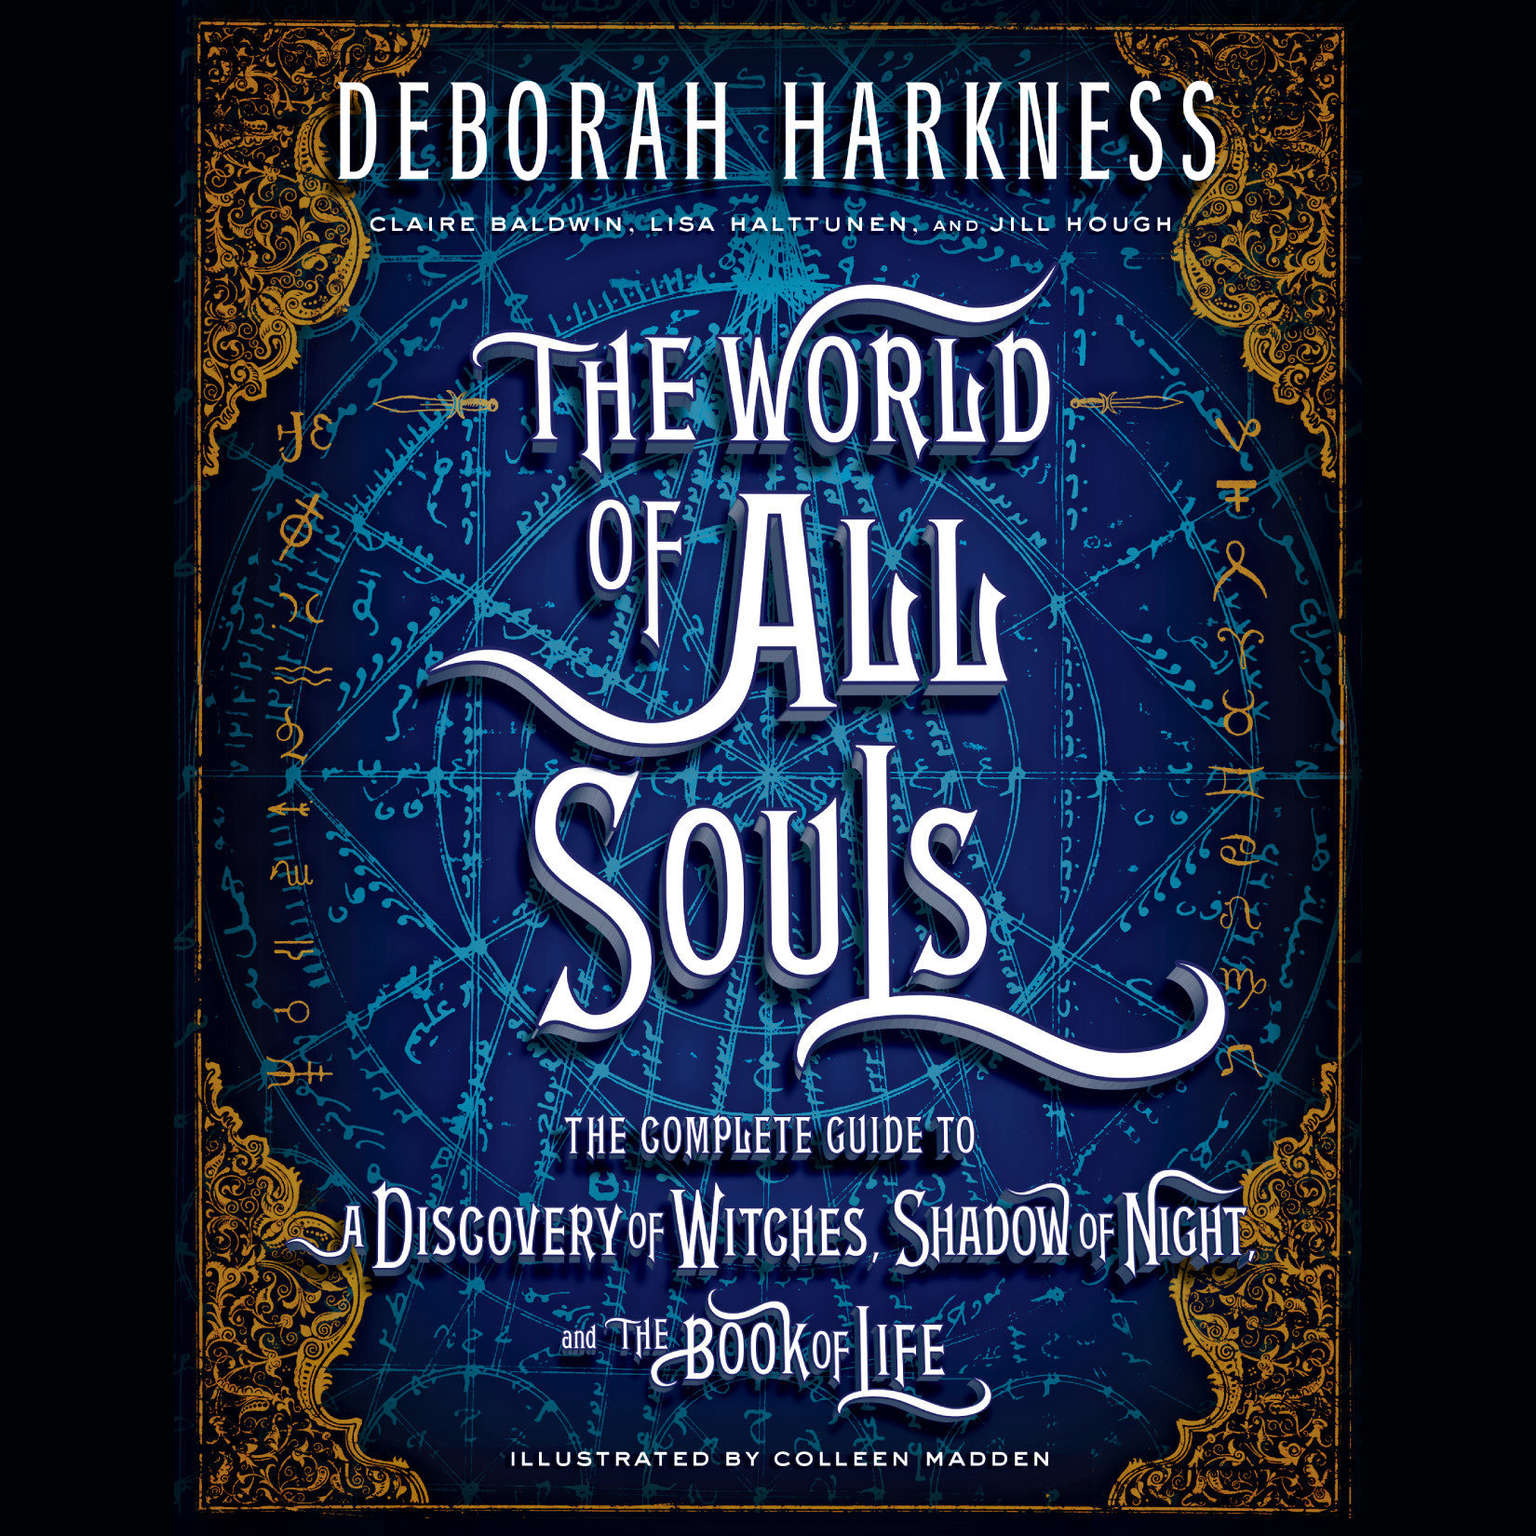 The World of All Souls: The Complete Guide to A Discovery of Witches, Shadow of Night, and The Book of Life Audiobook, by Deborah Harkness